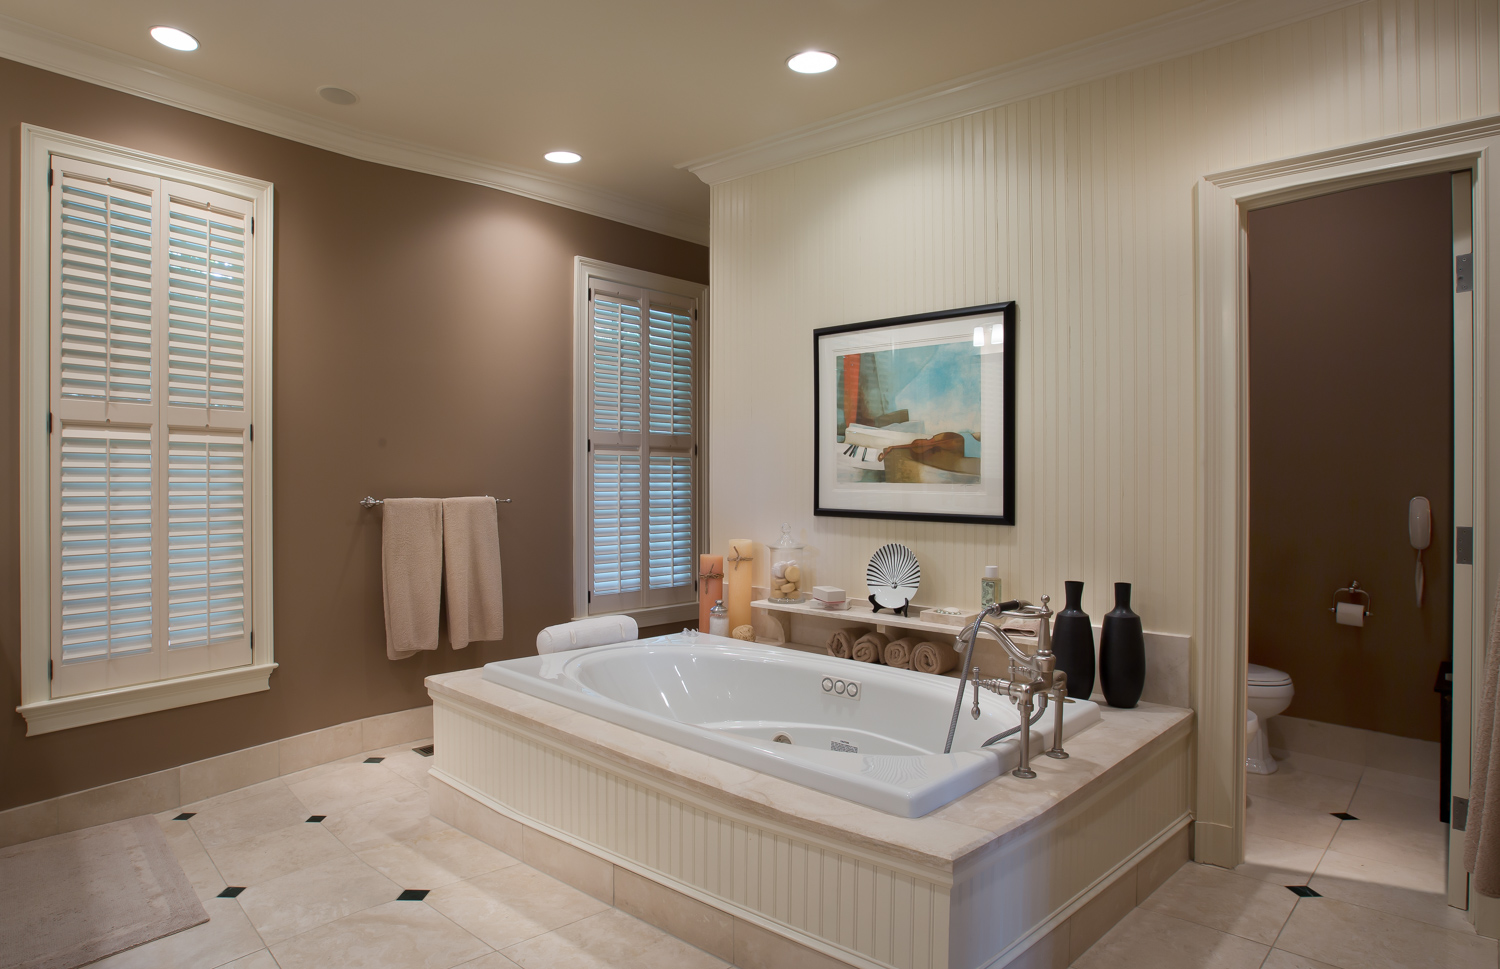 013 master-bathroom-tub-PS1.jpg